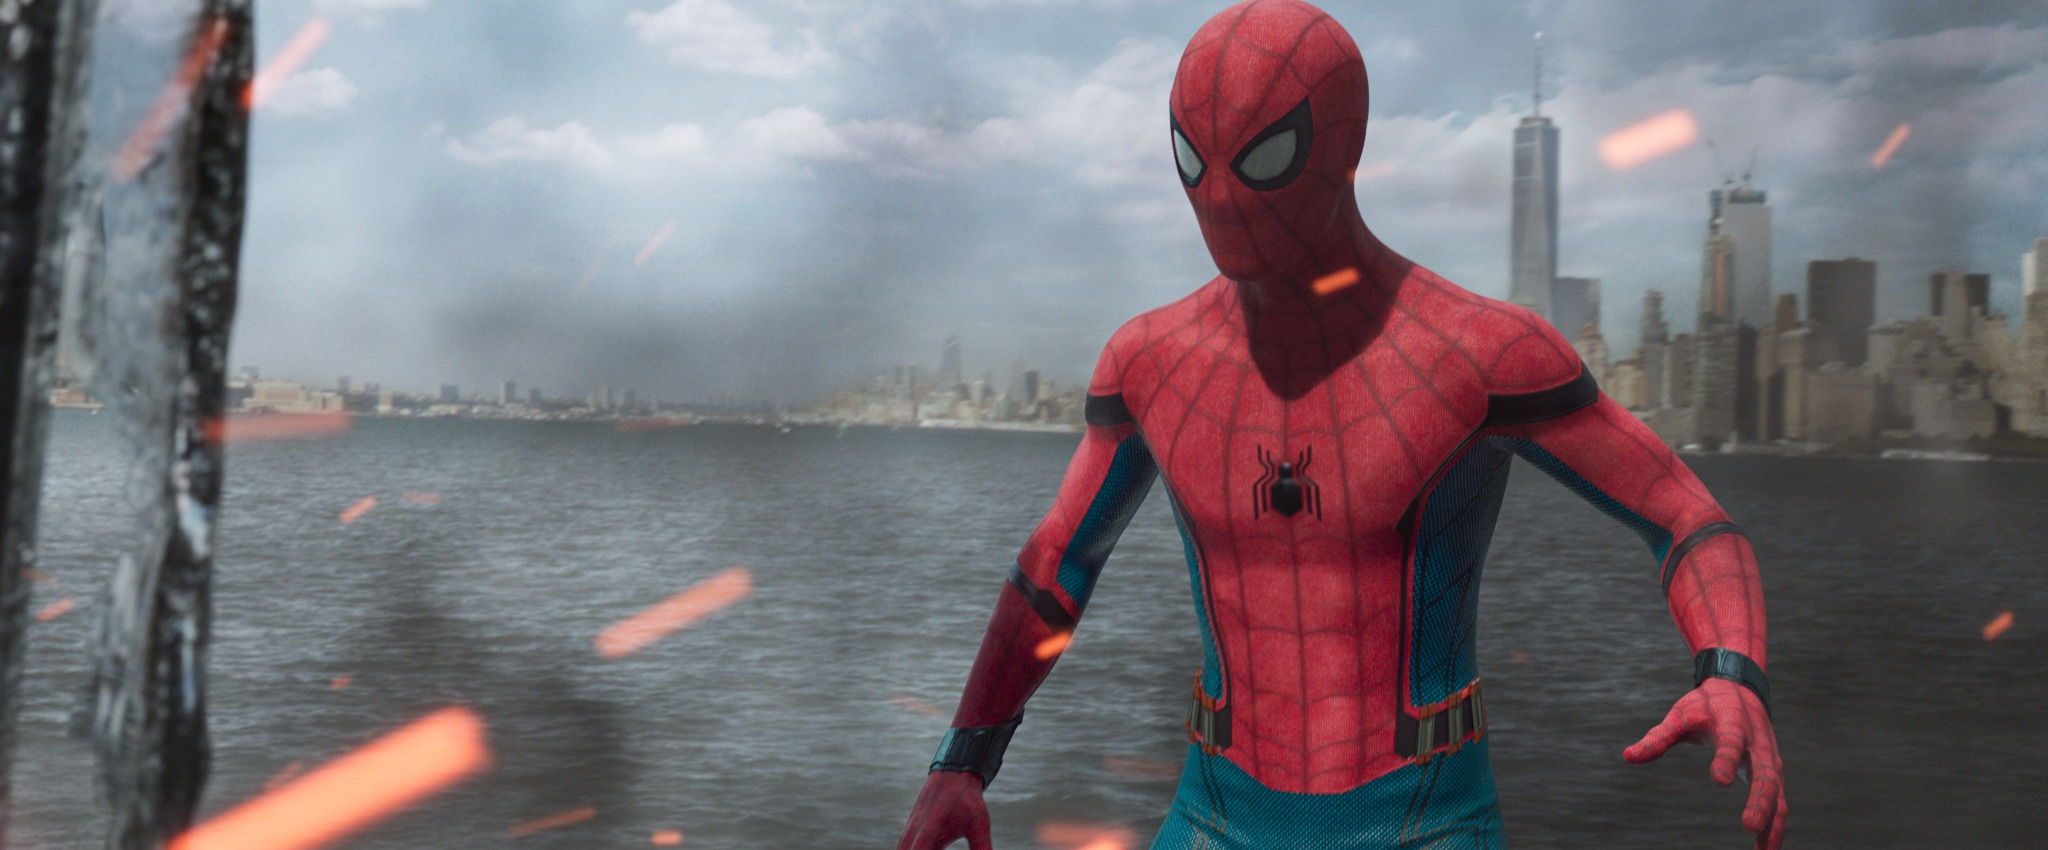 A quick guide to the villains of 'Spider-Man: Homecoming'